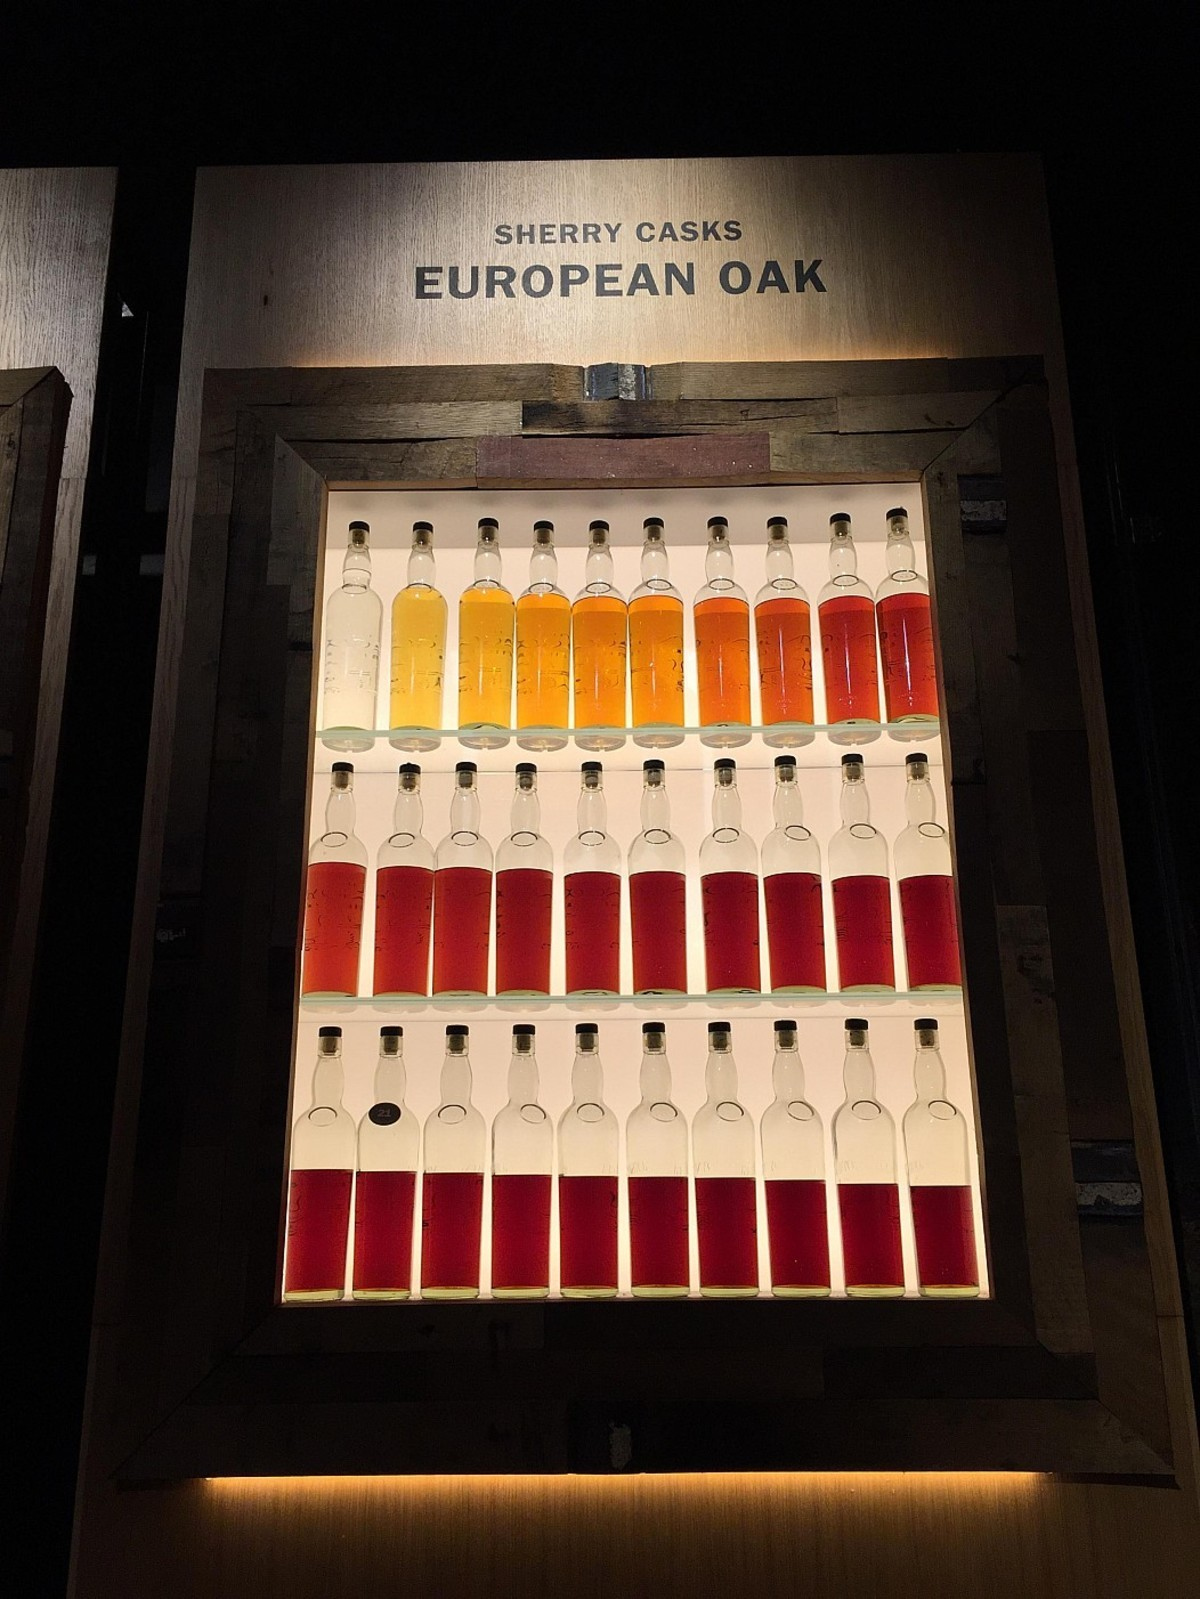 european oak. .. this reminds me of when you have blood in your pee. its starts ok then gets worse.